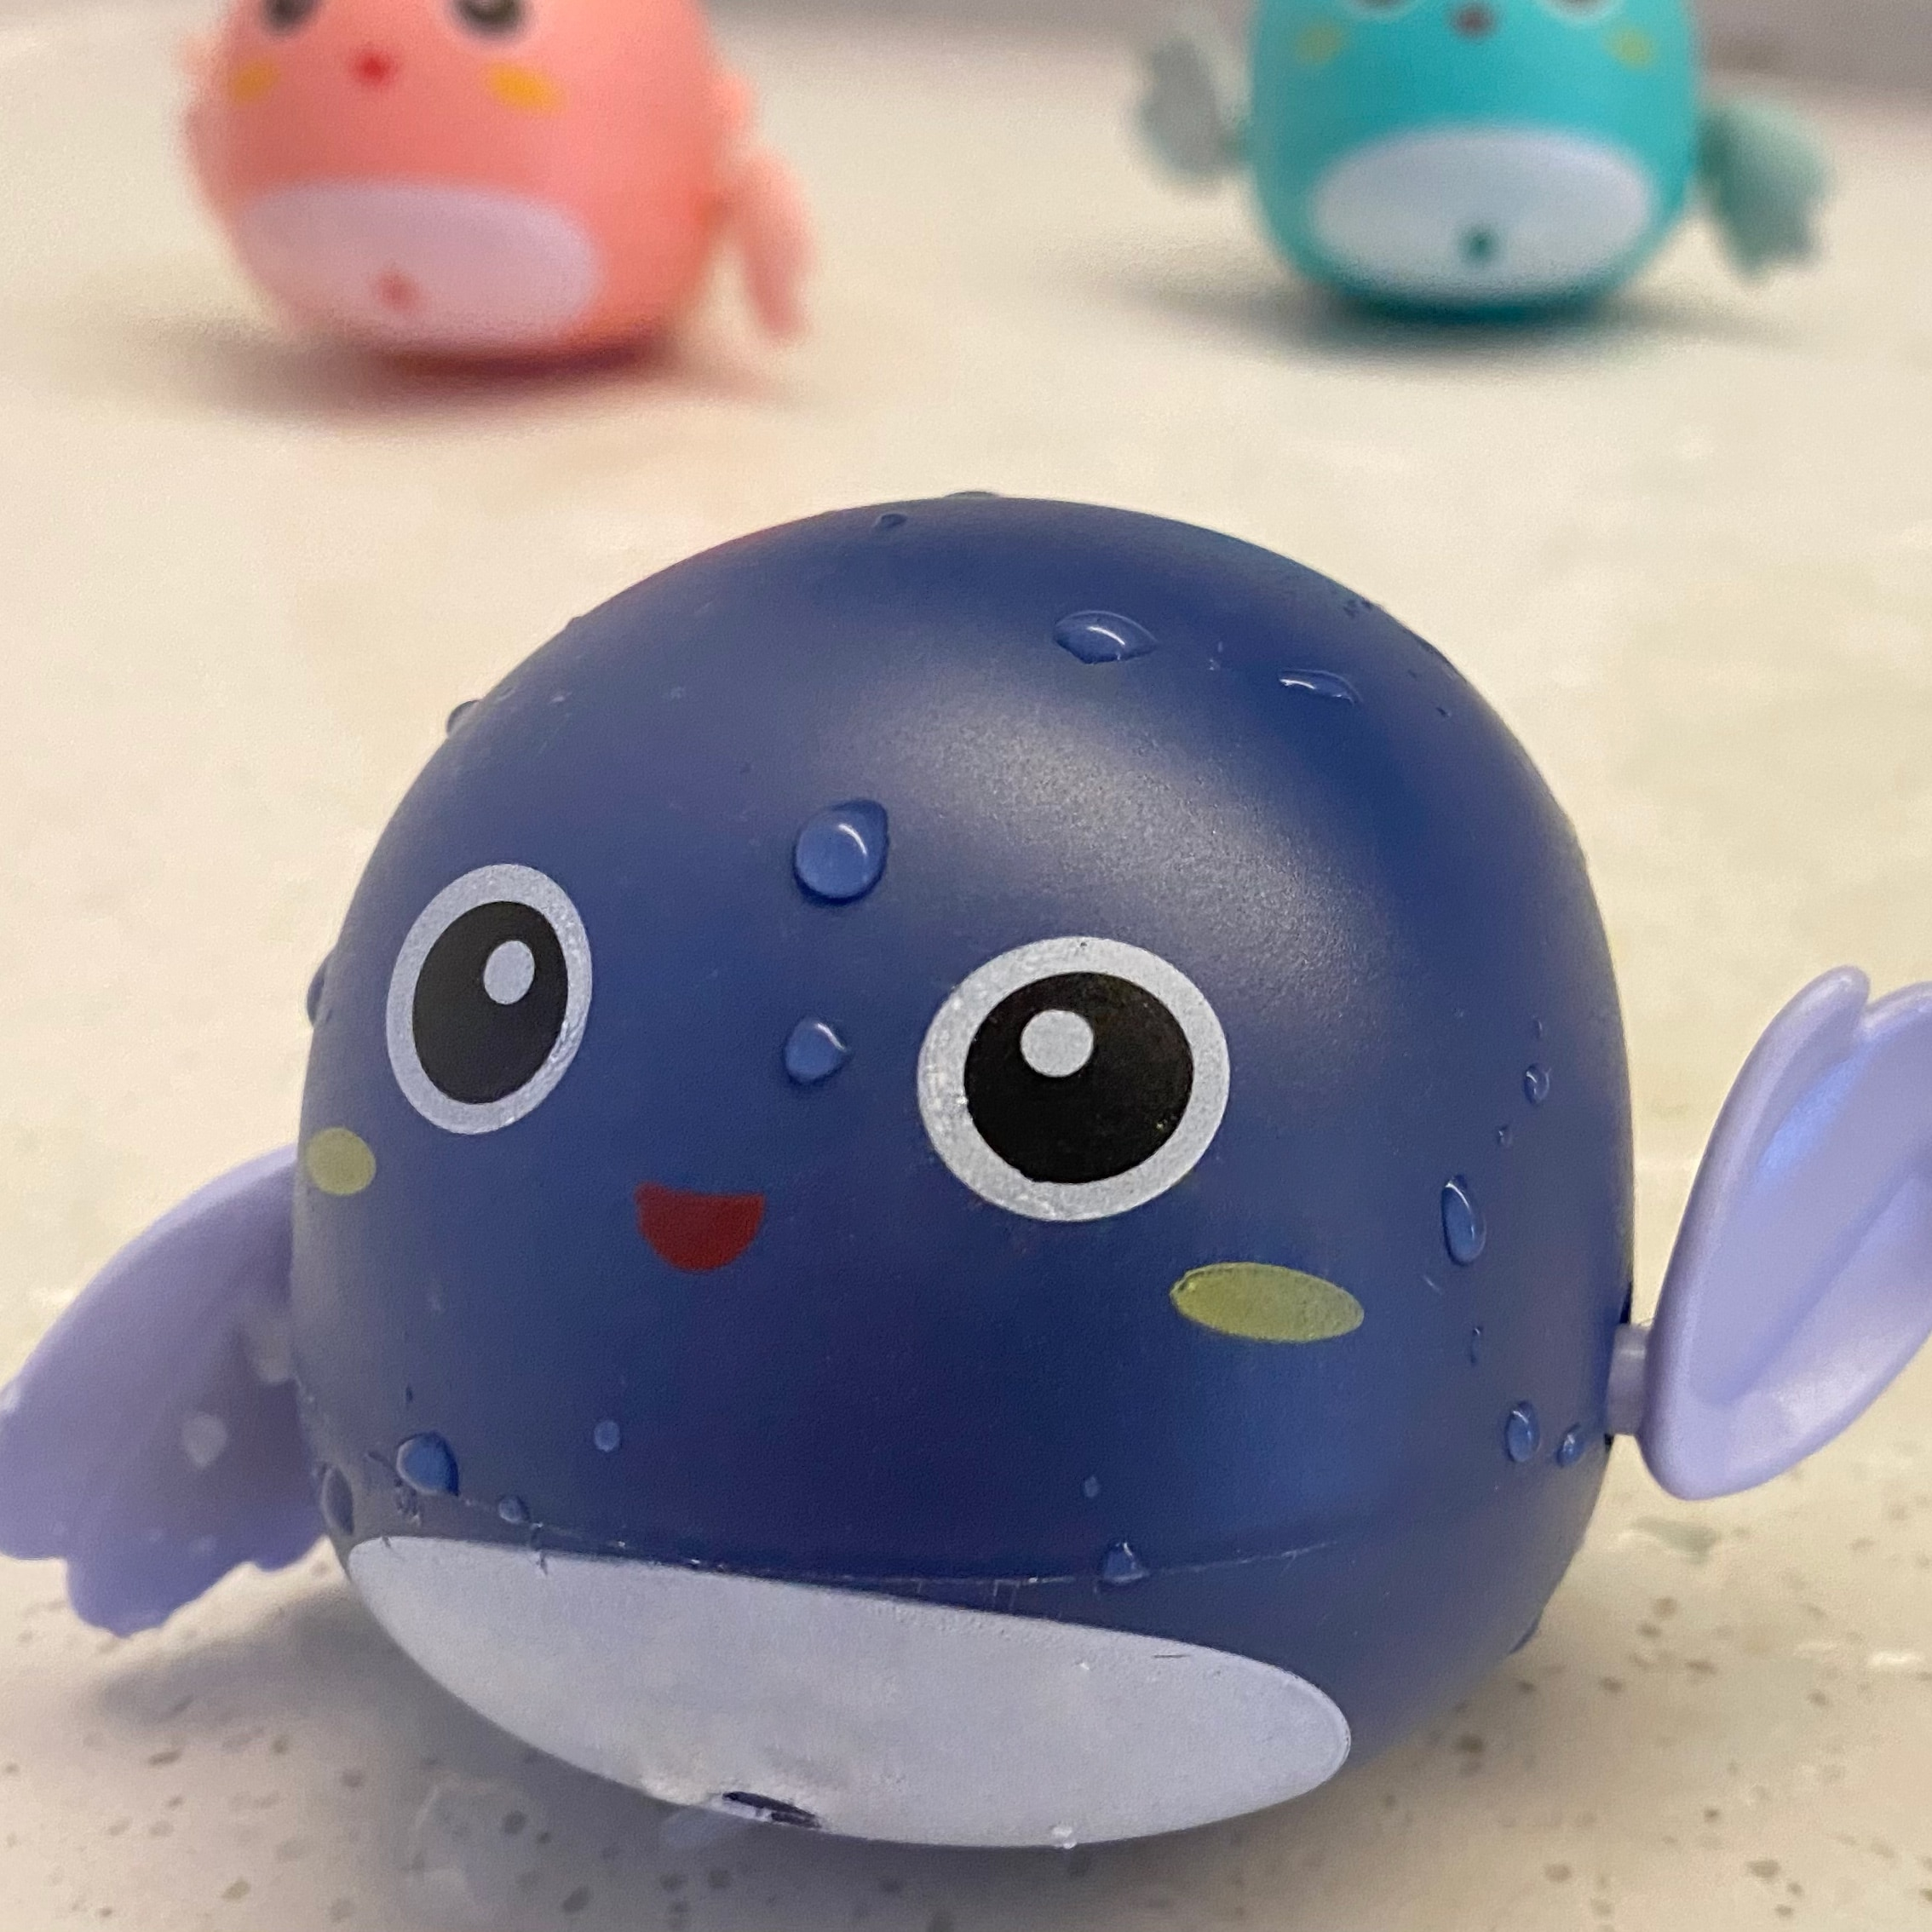 1PCS Baby Bath Toy Swimming Water Toys for Kids Bathroom Baby Children Play Animals Float Toy Funny Game Baby Speelgoed Kid Gift rotating kaleidoscope rotation fancy world baby toy kids autism kid interesting toy for children gift cherryb